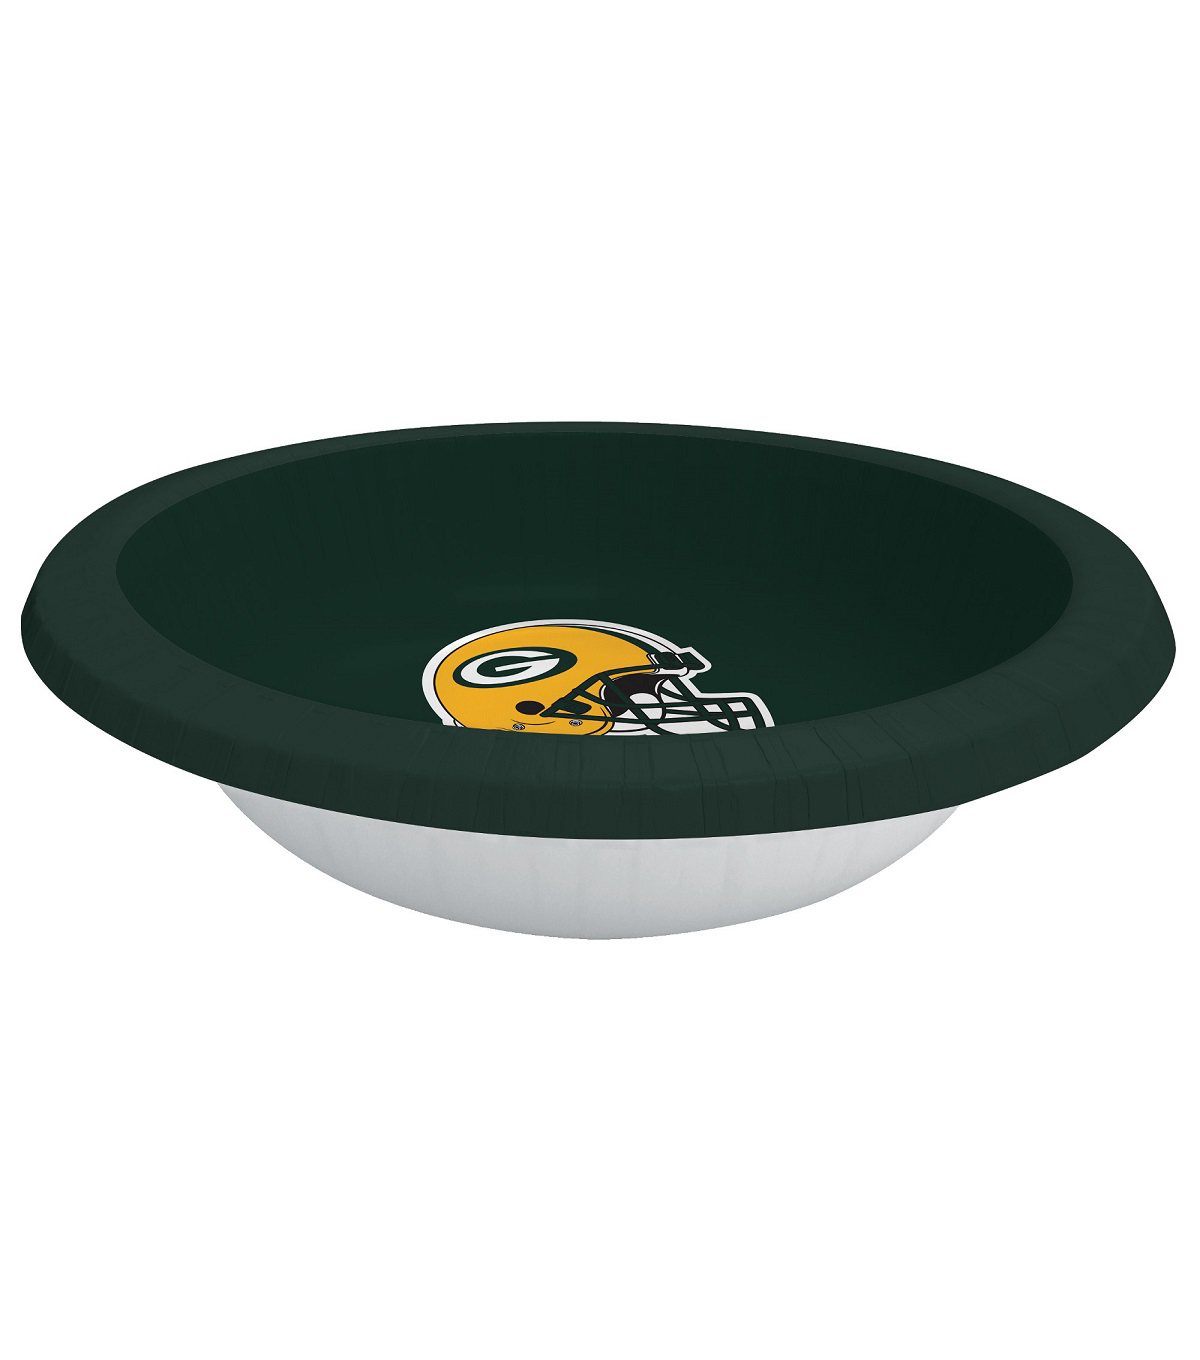 Green Bay Packers Paper Bowls